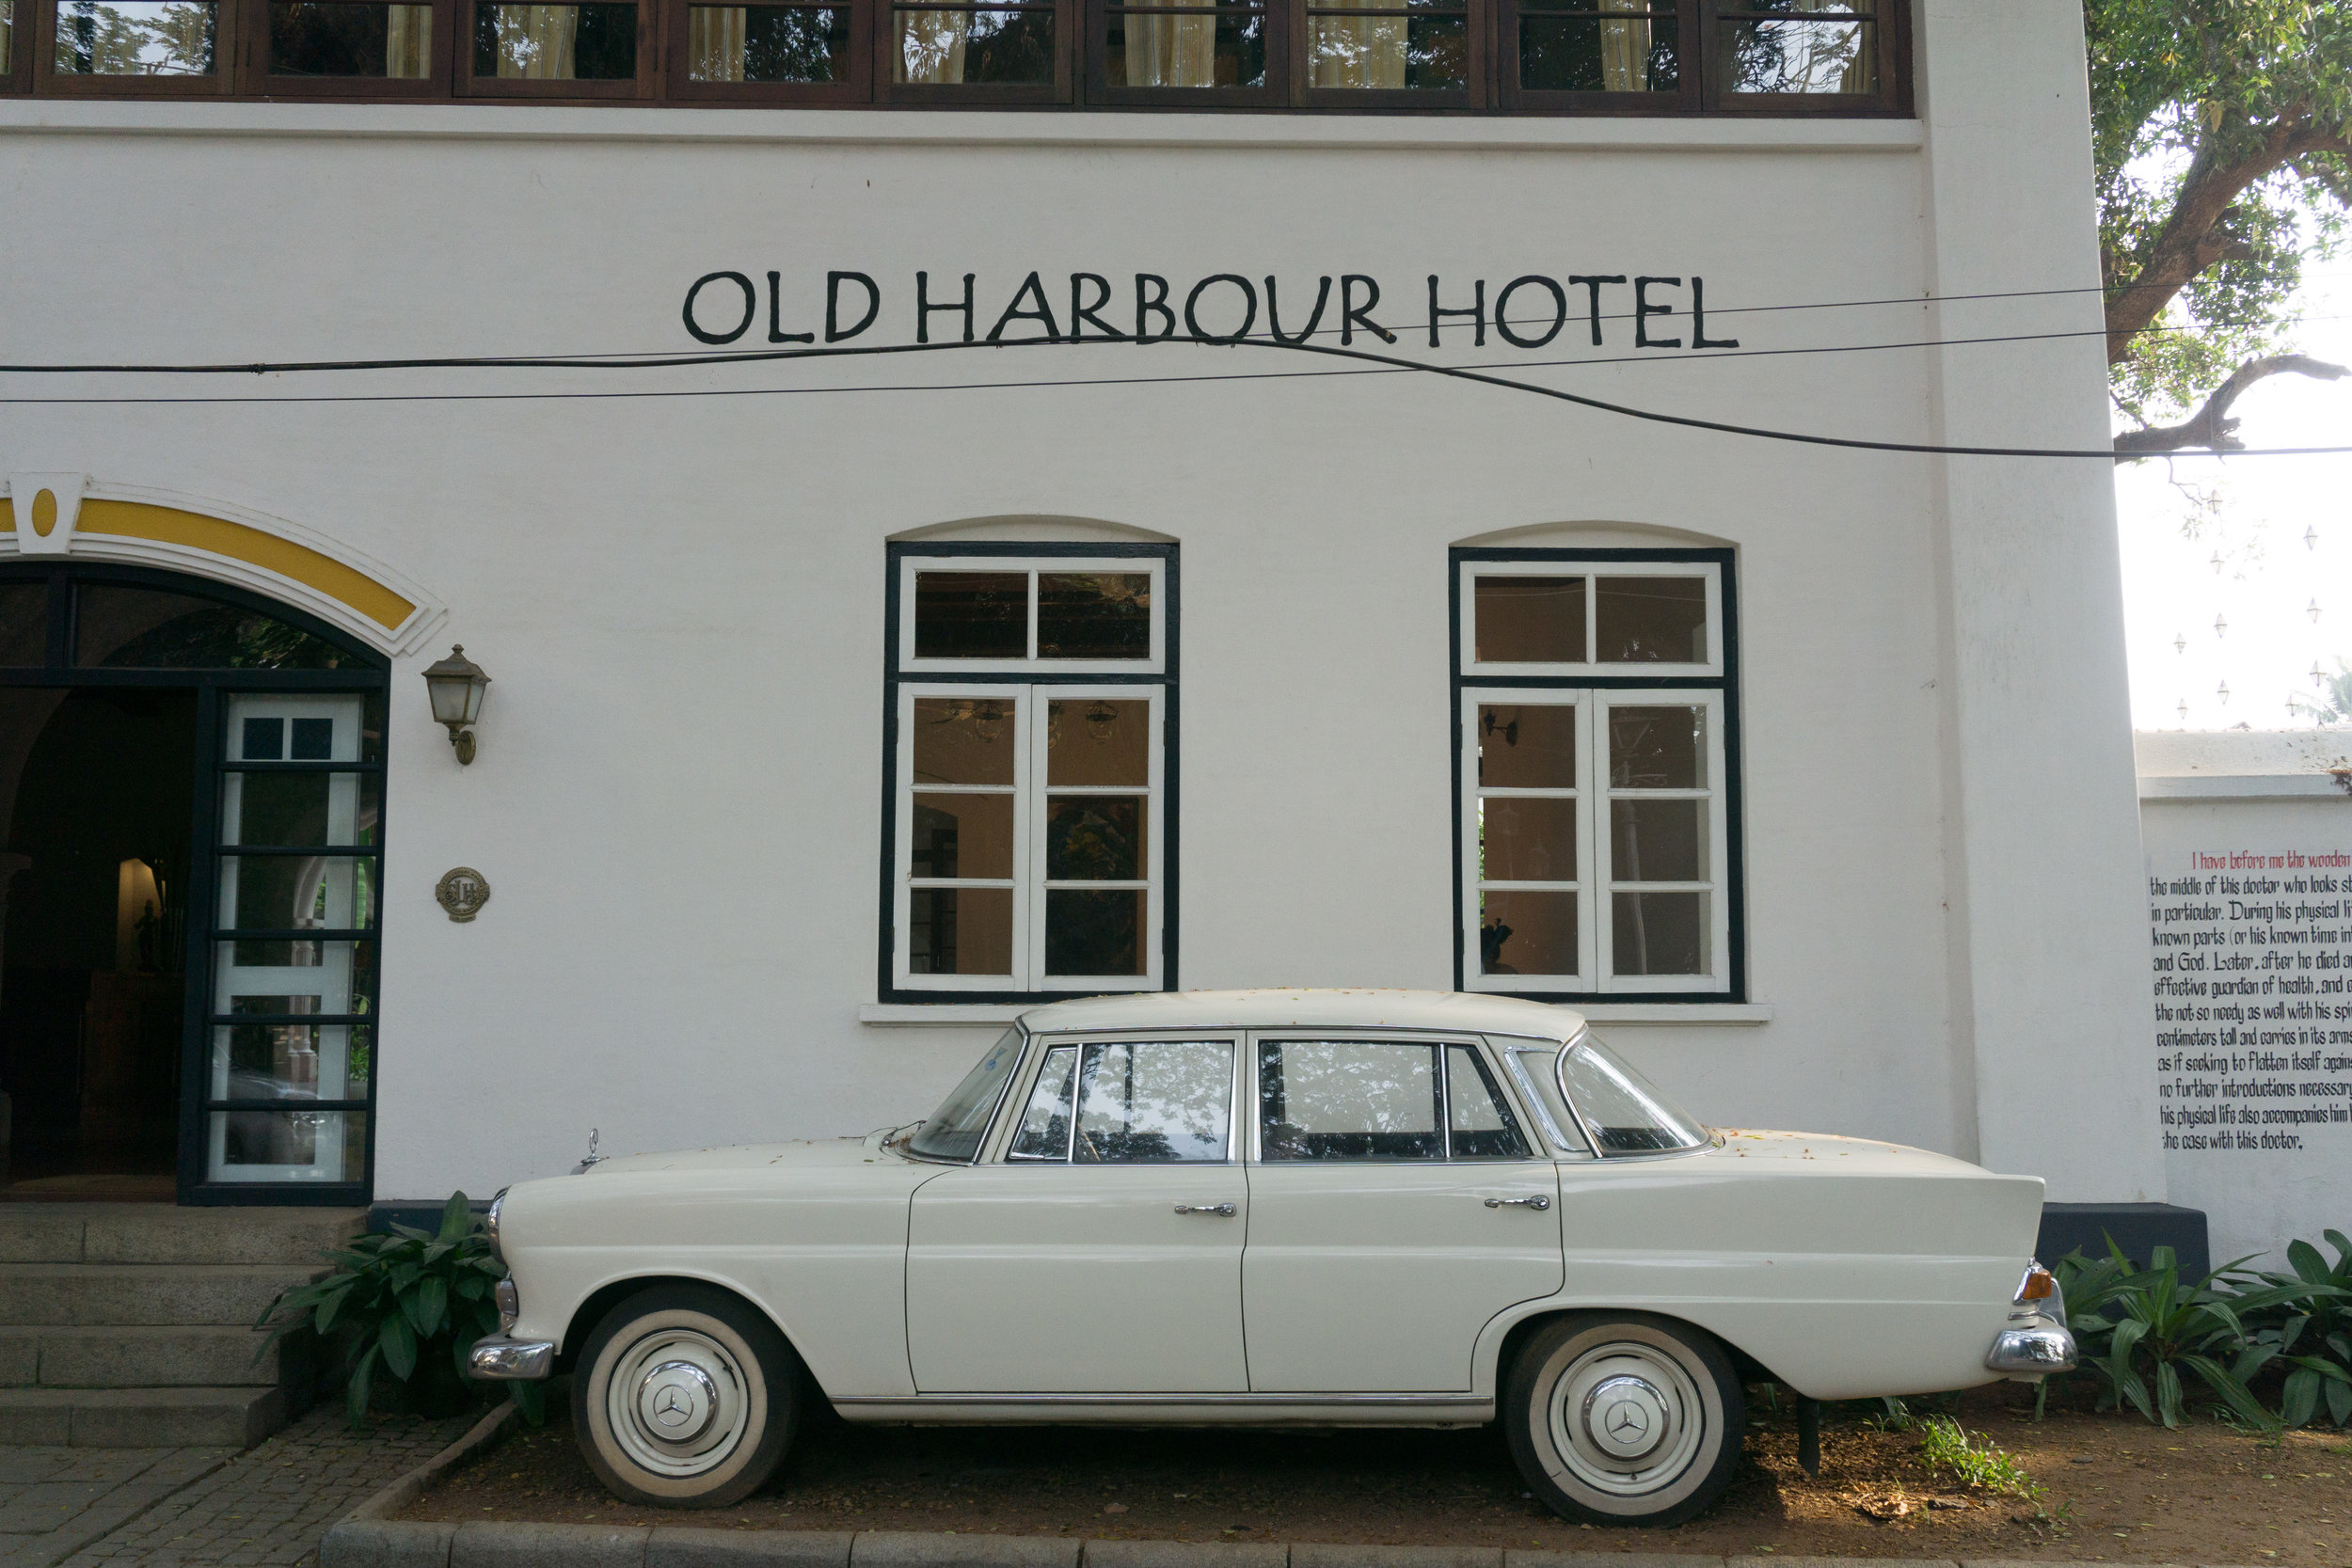 An Indian classic car, the Ambassador, outside the Old Harbour Hotel